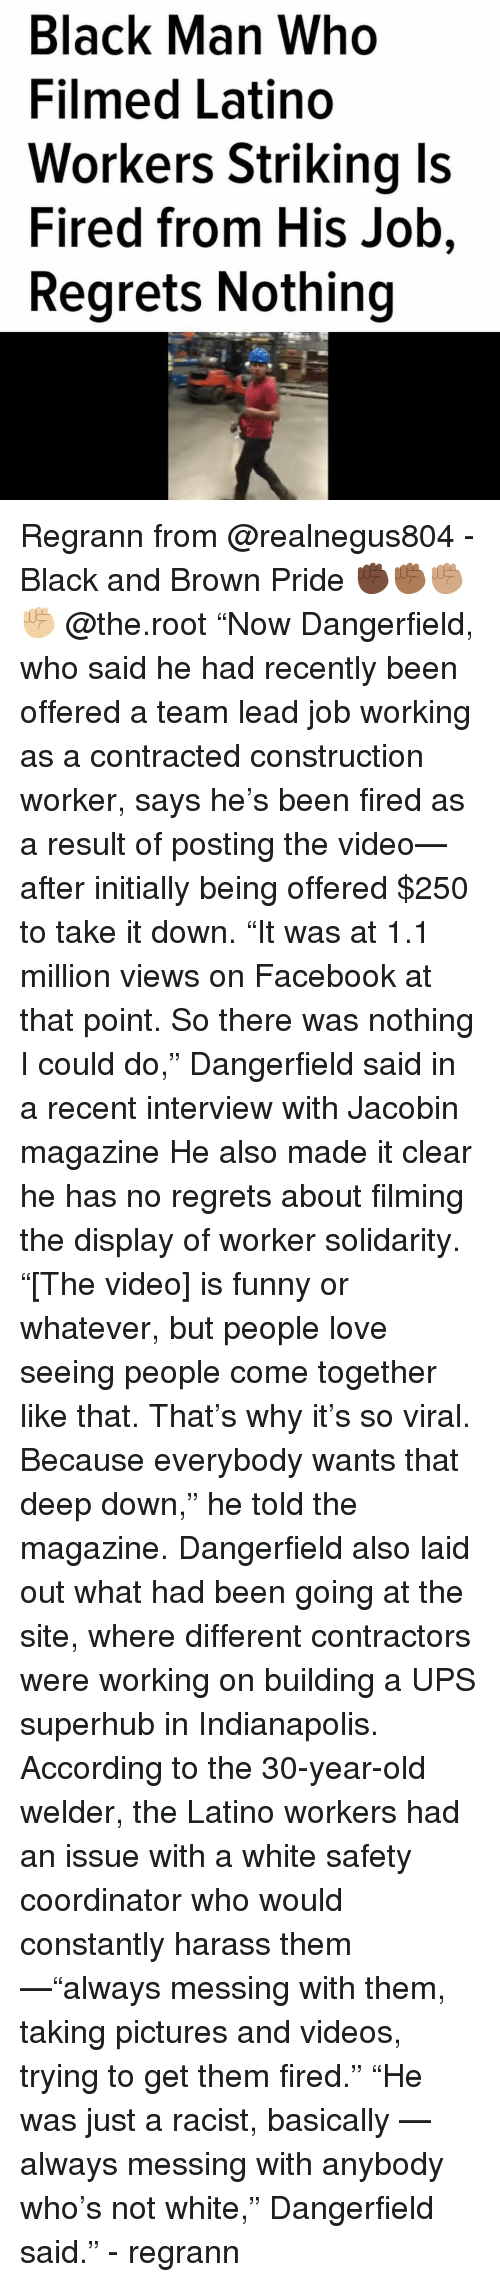 """Facebook, Funny, and Love: Black Man Who  Filmed Latino  Workers Striking ls  Fired from His Job,  Regrets Nothing Regrann from @realnegus804 - Black and Brown Pride ✊🏿✊🏾✊🏽✊🏼 @the.root """"Now Dangerfield, who said he had recently been offered a team lead job working as a contracted construction worker, says he's been fired as a result of posting the video—after initially being offered $250 to take it down. """"It was at 1.1 million views on Facebook at that point. So there was nothing I could do,"""" Dangerfield said in a recent interview with Jacobin magazine He also made it clear he has no regrets about filming the display of worker solidarity. """"[The video] is funny or whatever, but people love seeing people come together like that. That's why it's so viral. Because everybody wants that deep down,"""" he told the magazine. Dangerfield also laid out what had been going at the site, where different contractors were working on building a UPS superhub in Indianapolis. According to the 30-year-old welder, the Latino workers had an issue with a white safety coordinator who would constantly harass them—""""always messing with them, taking pictures and videos, trying to get them fired."""" """"He was just a racist, basically — always messing with anybody who's not white,"""" Dangerfield said."""" - regrann"""